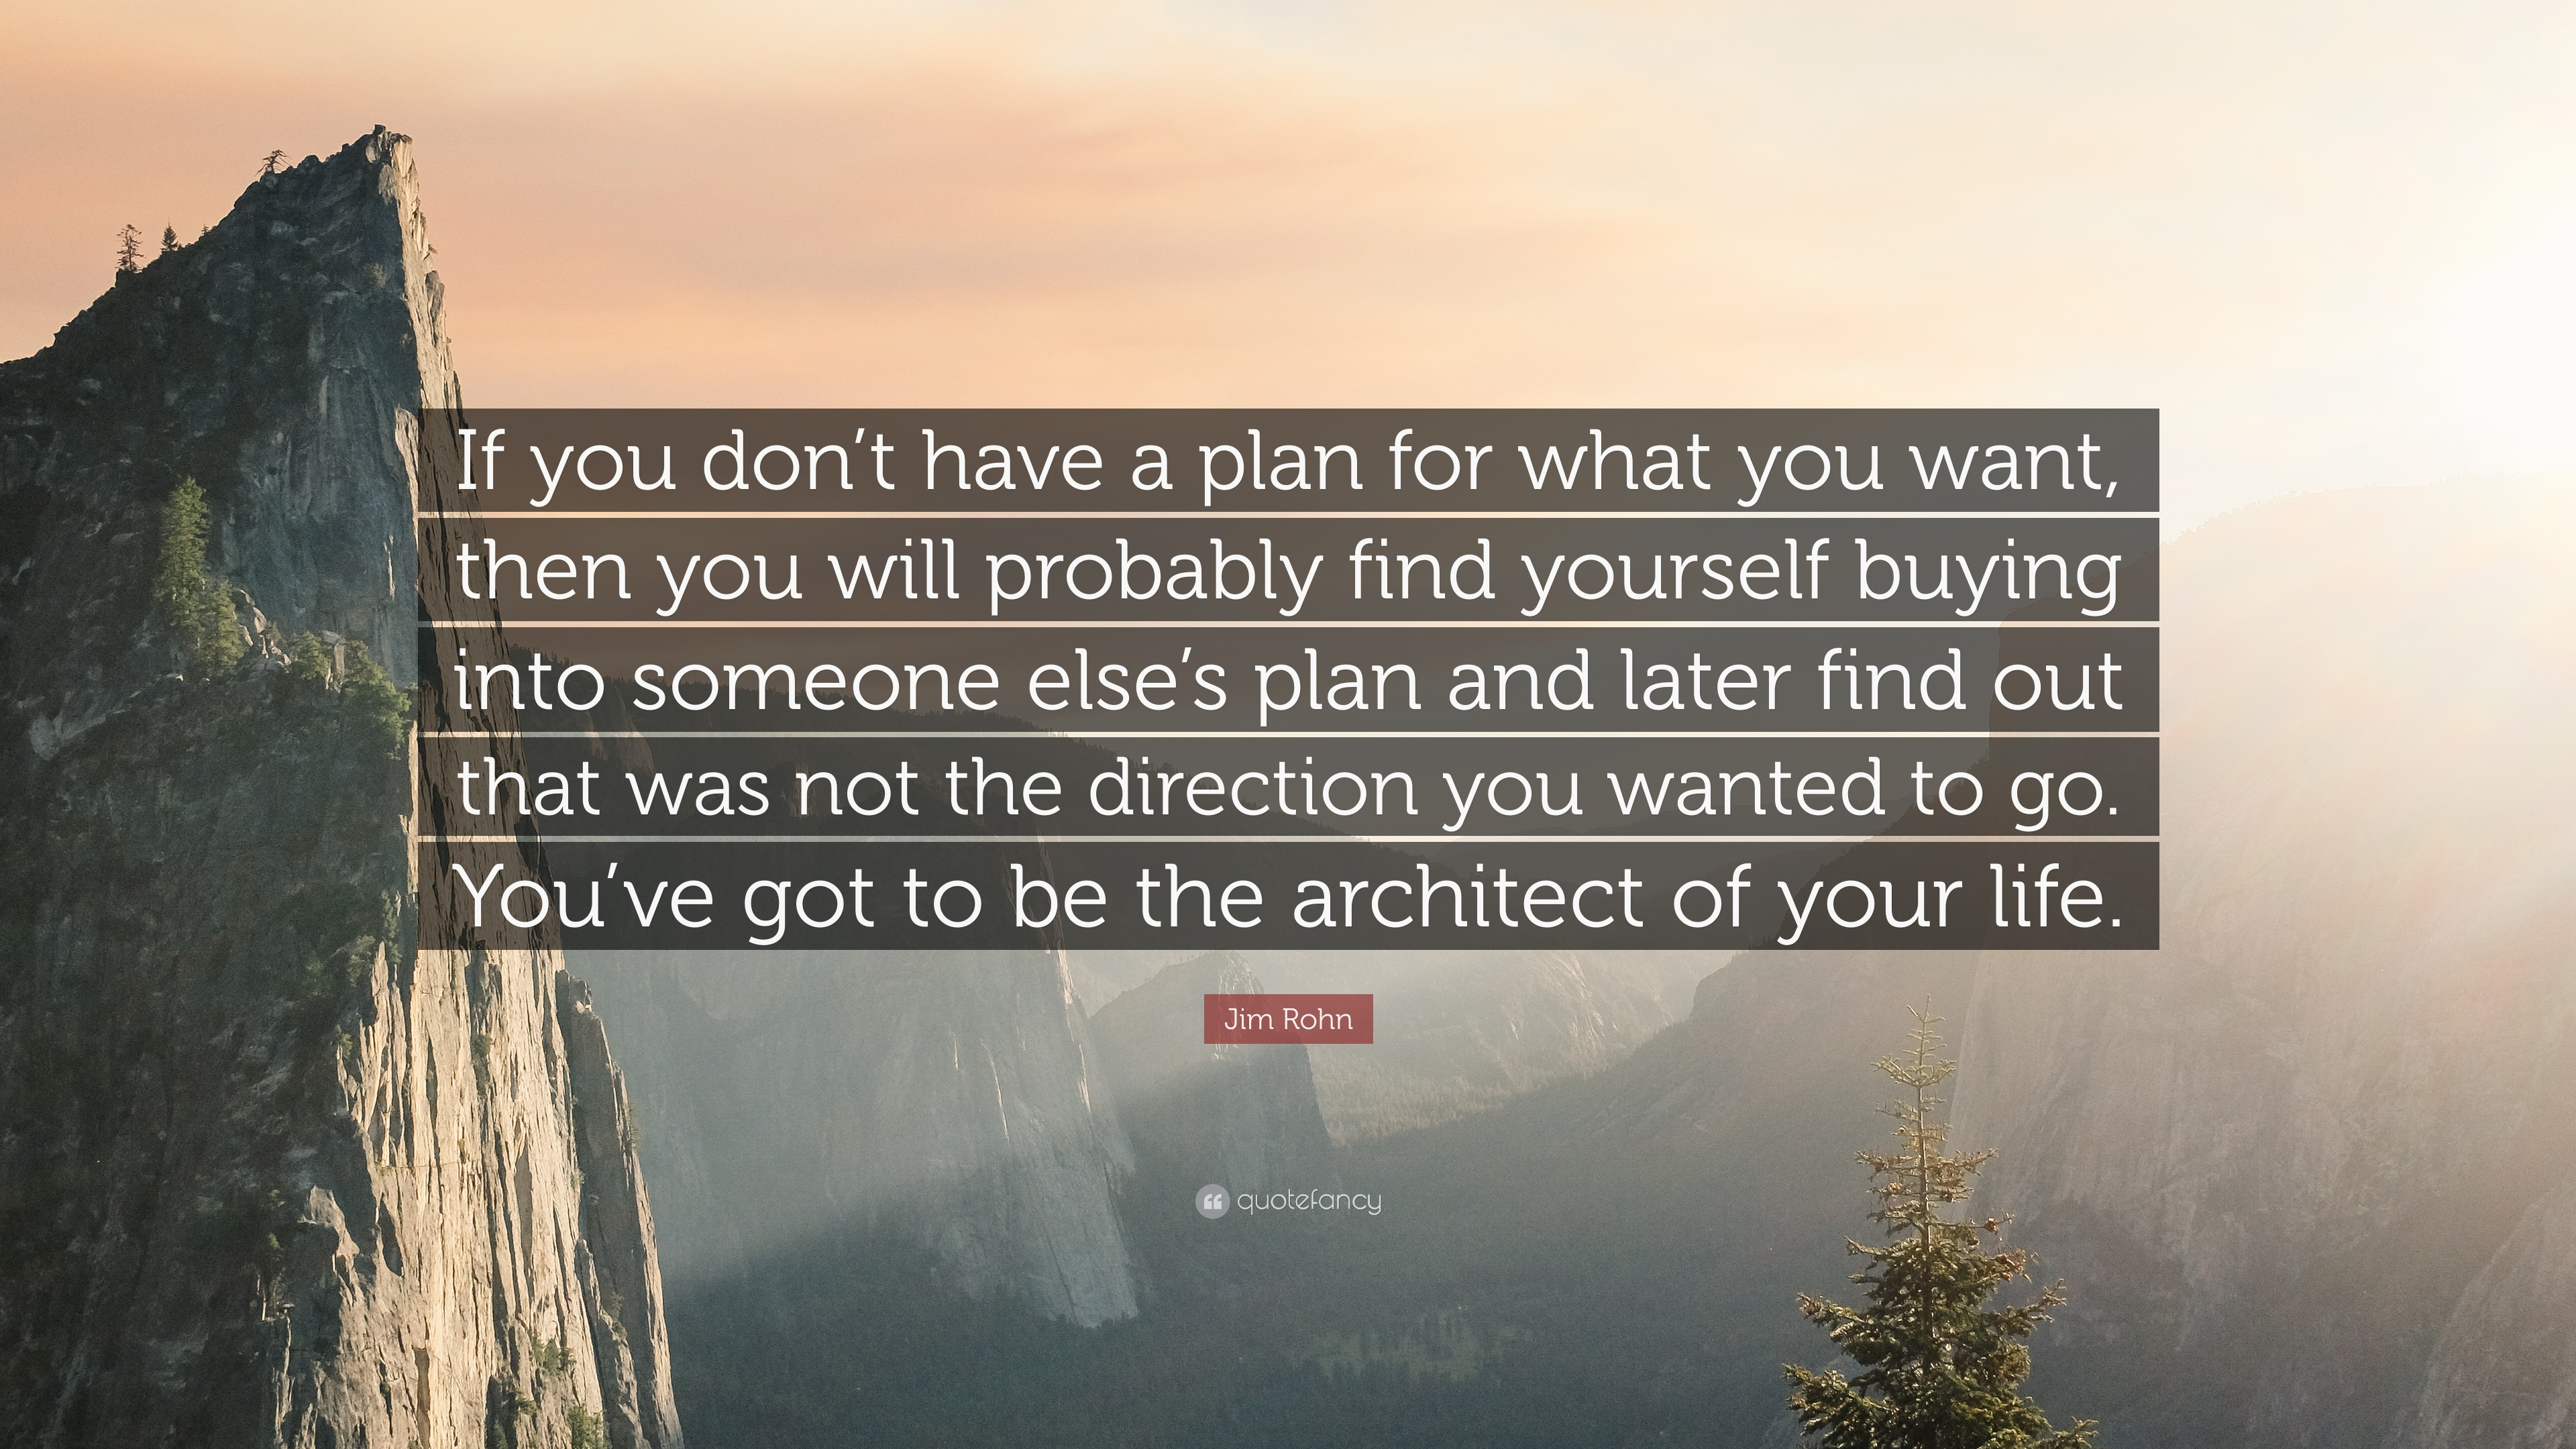 jim rohn quote if you don t have a plan for what you want then jim rohn quote if you don t have a plan for what you